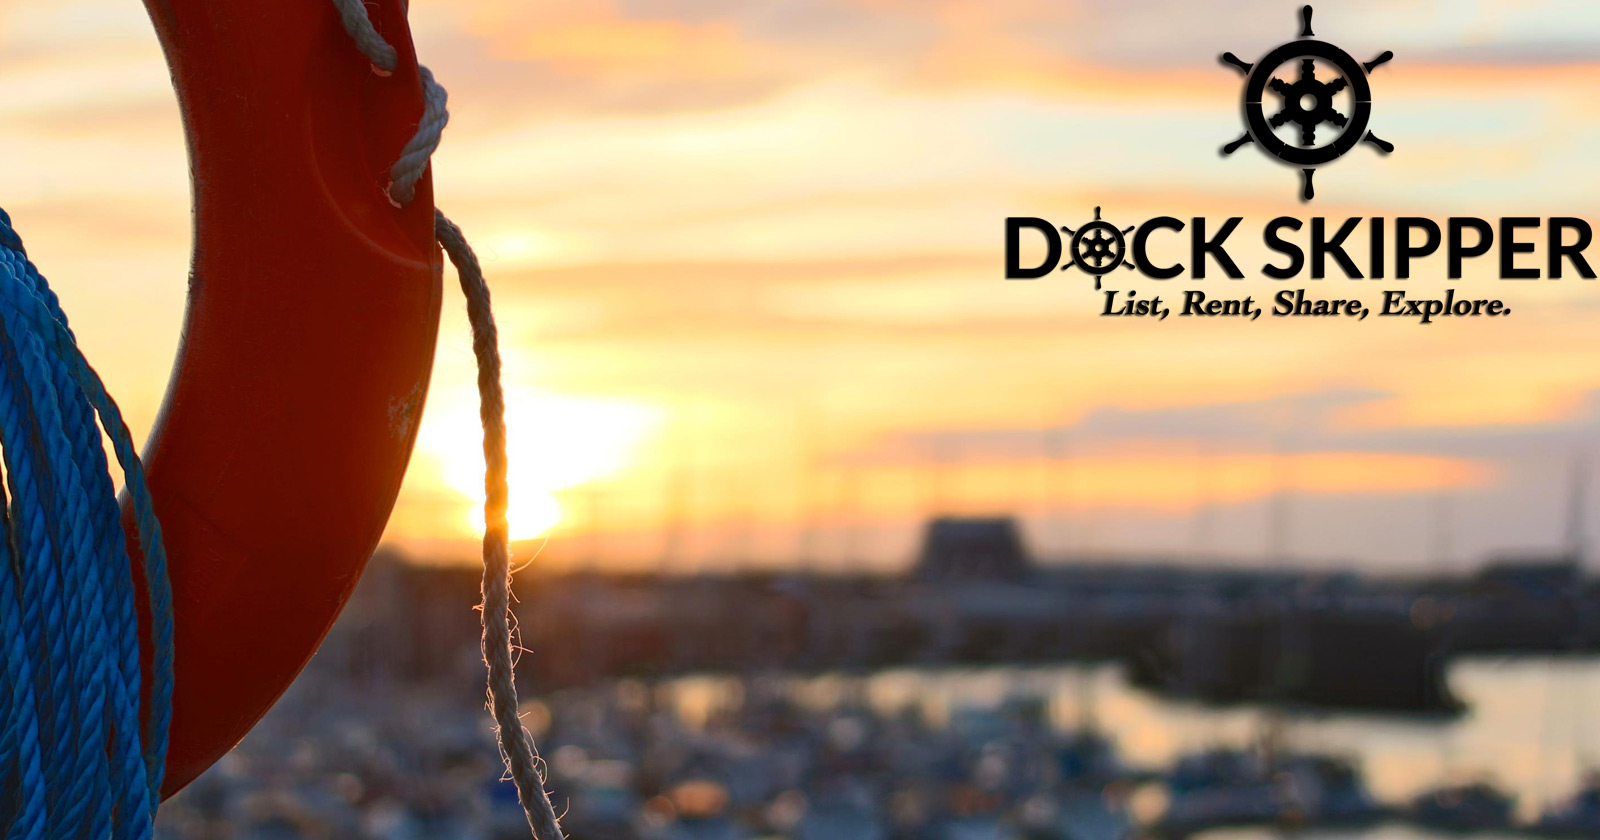 Dock Skipper -